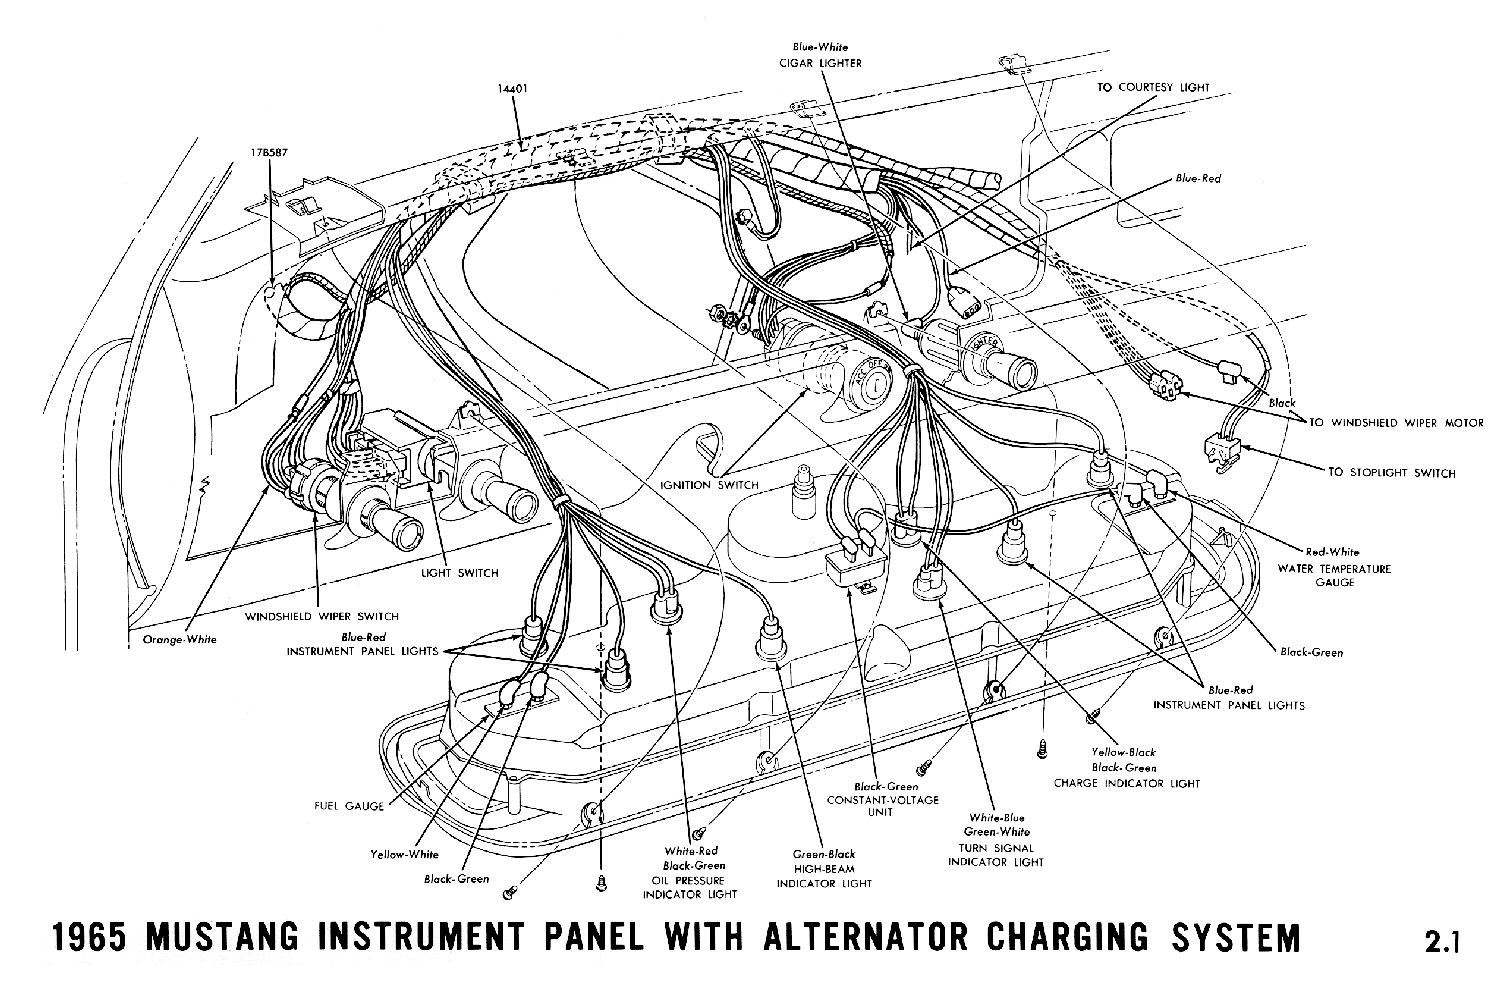 1965 Mustang Complete Wiring Diagram Schematics Diagrams 1966 Barracuda Harness Average Joe Restoration Rh Averagejoerestoration Com Color